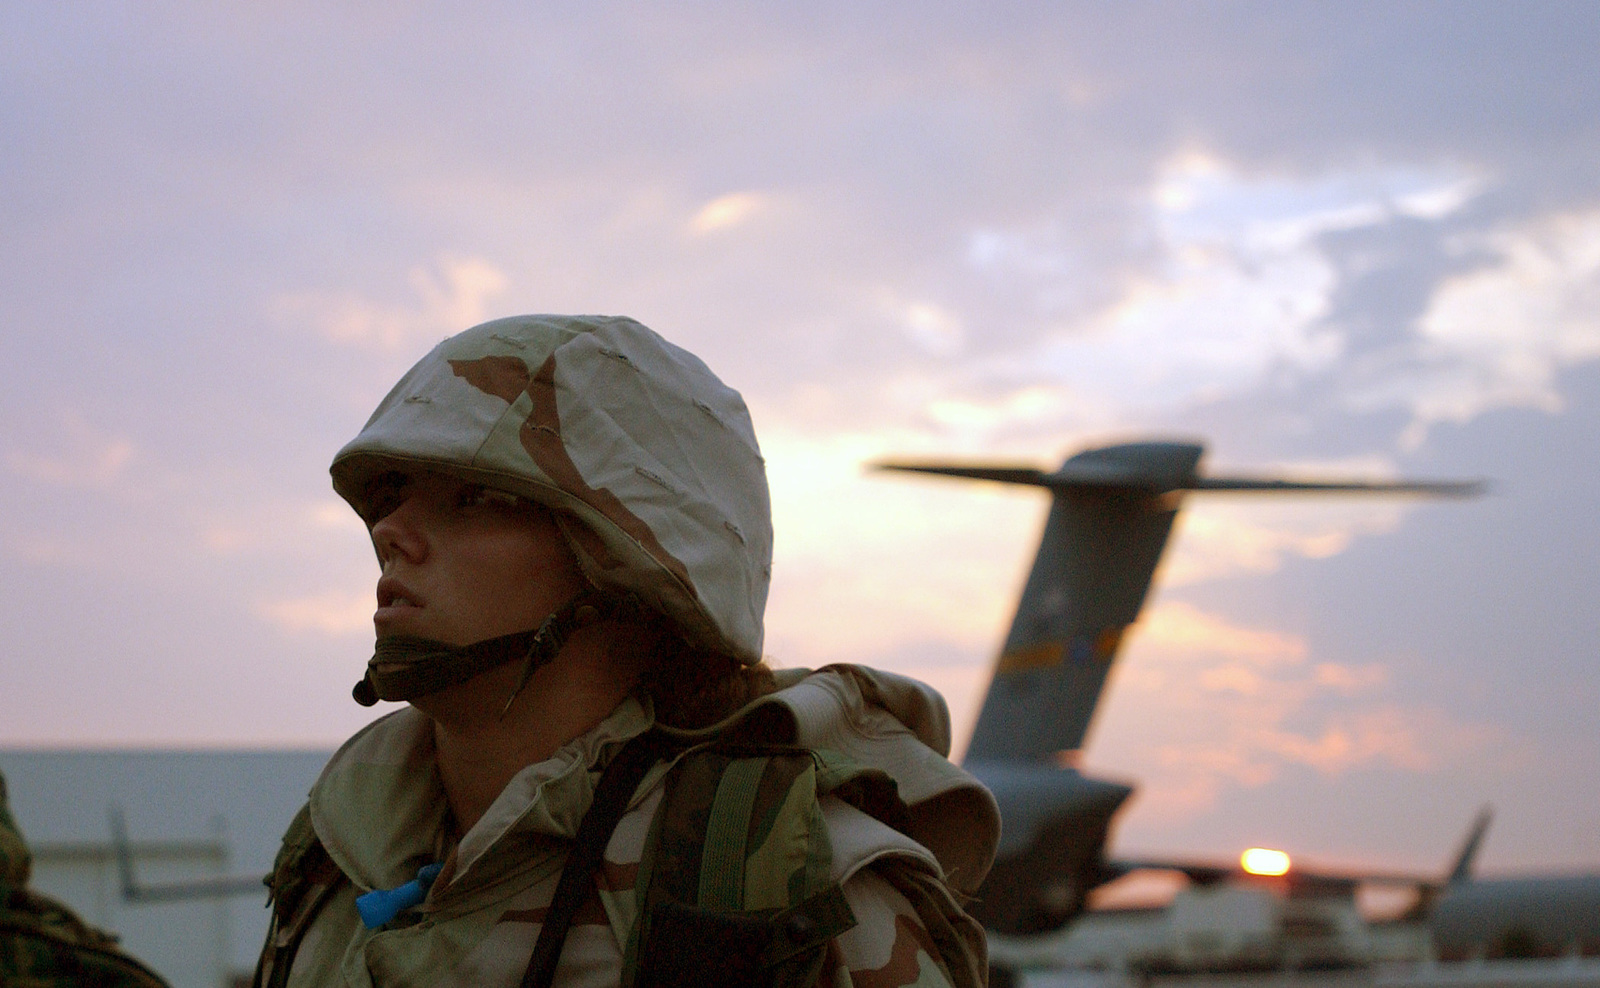 AIRMAN (AMN) Brandy Skoofalos, USAF, 437th Security Forces, Charleston AFB, South Carolina, on the ramp waiting to board an aircraft as she prepares to deploy to an unknown forward deployed location. She is one of many Air Force personnel mobilizing for the attack on terrorism during Operation ENDURING FREEDOM